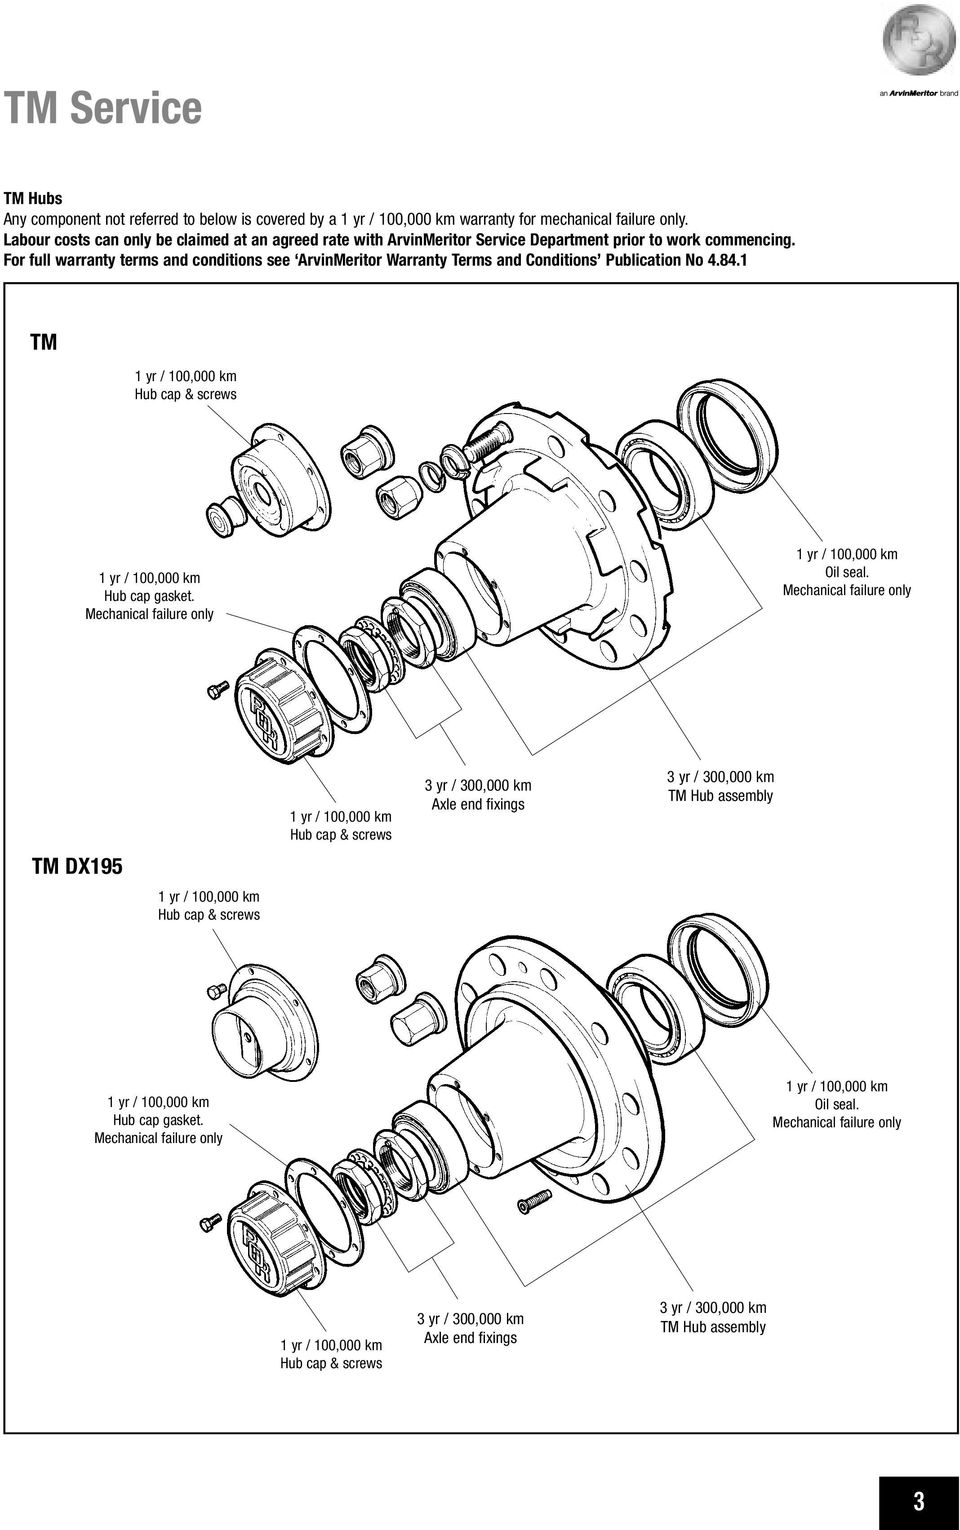 ror axle brake service manual tm series axles including disc and AR Bolt Diagram for full warranty terms and conditions see arvinmeritor warranty terms and conditions publication no 4 84